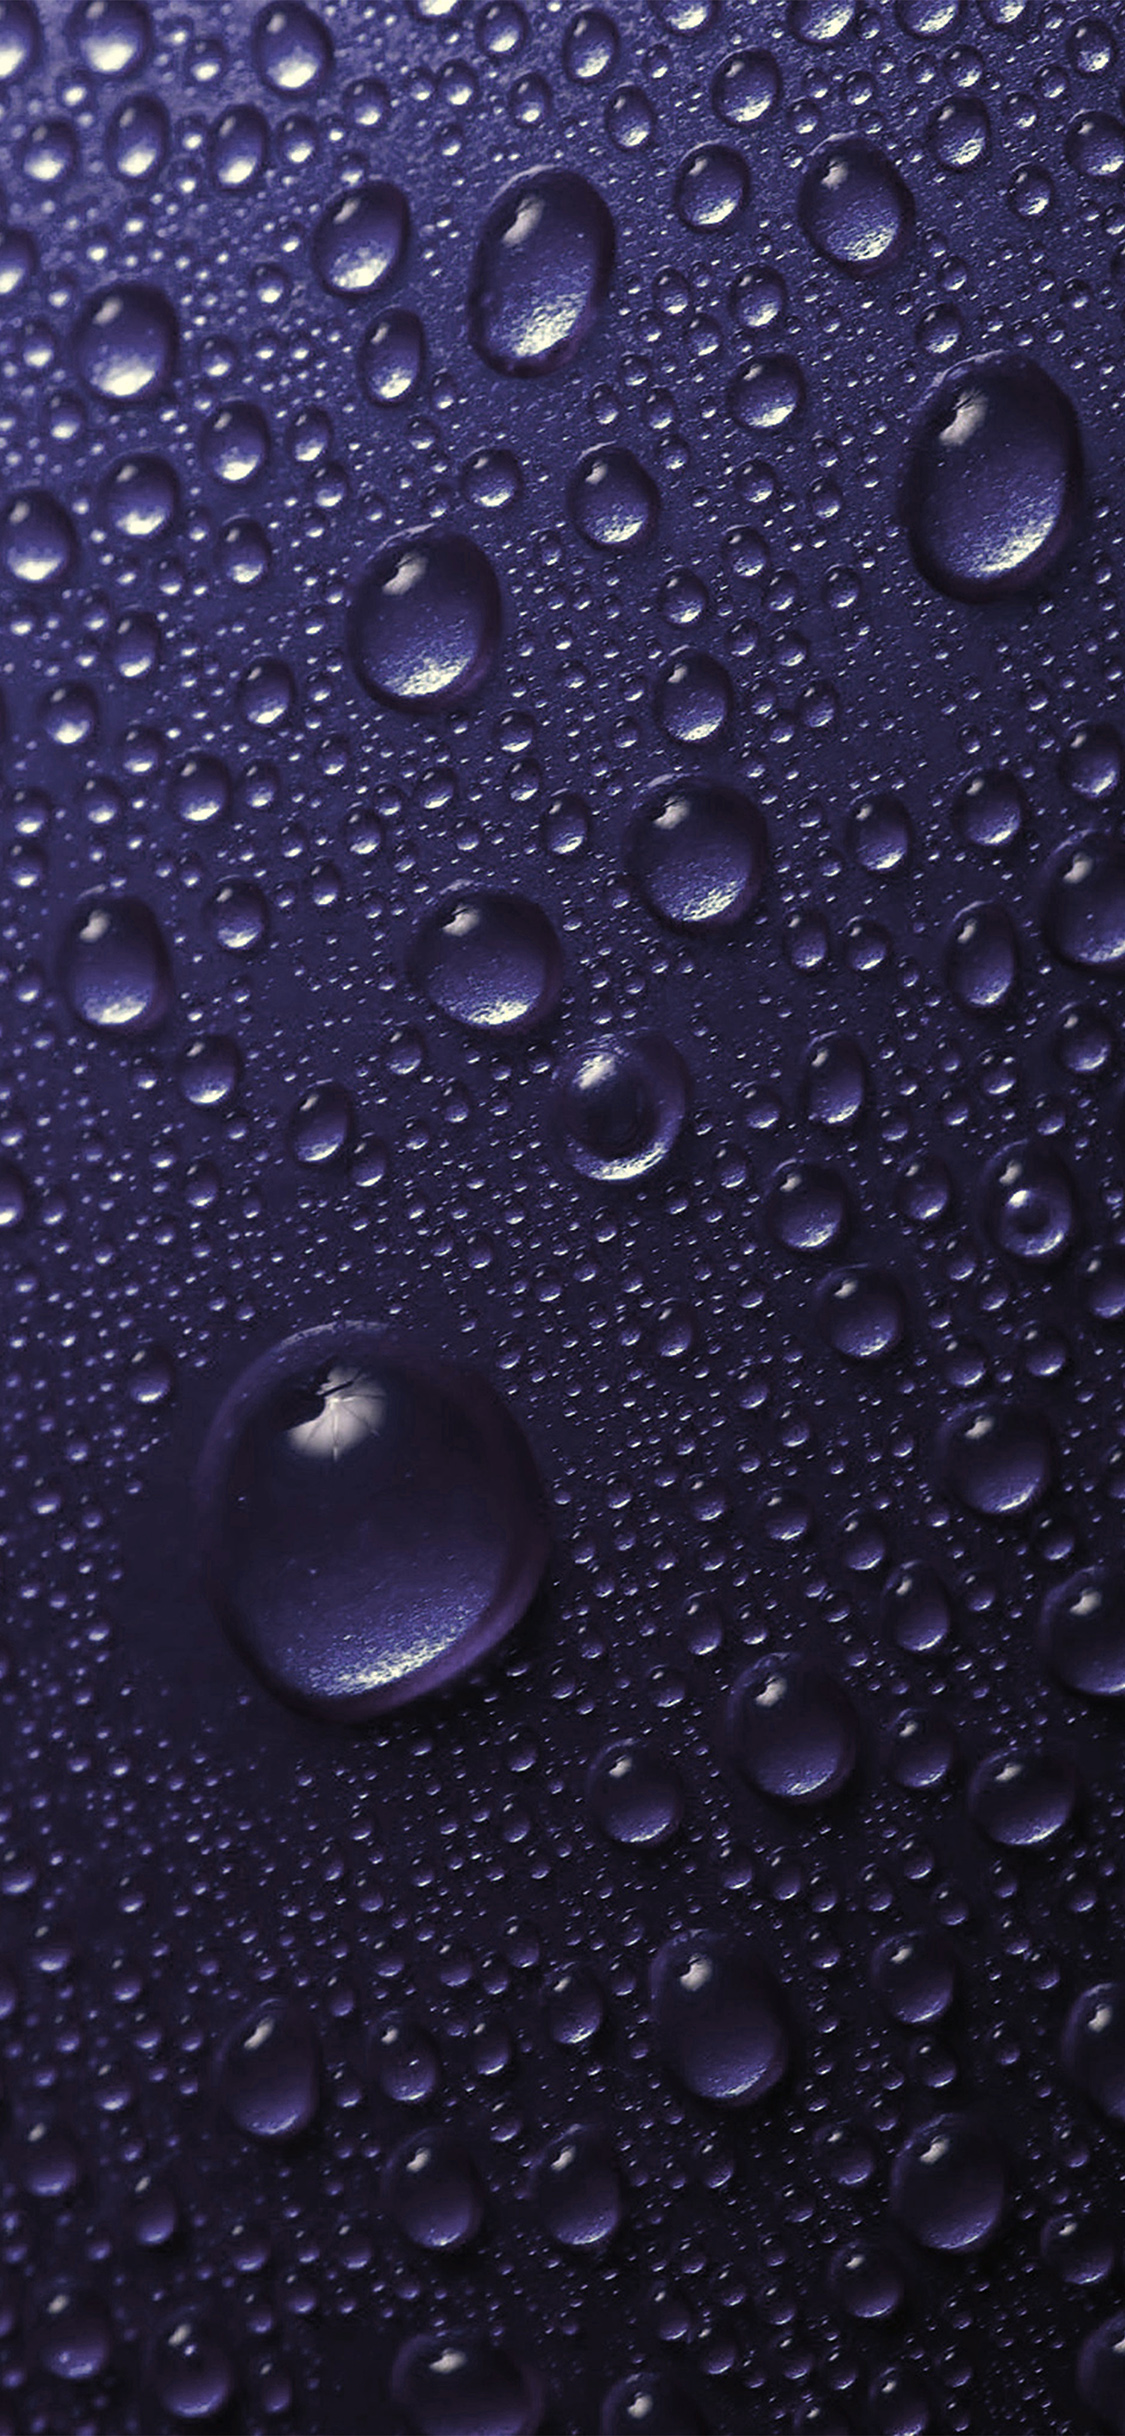 iPhonexpapers.com-Apple-iPhone-wallpaper-vr33-rain-drop-purple-water-sad-pattern-dark